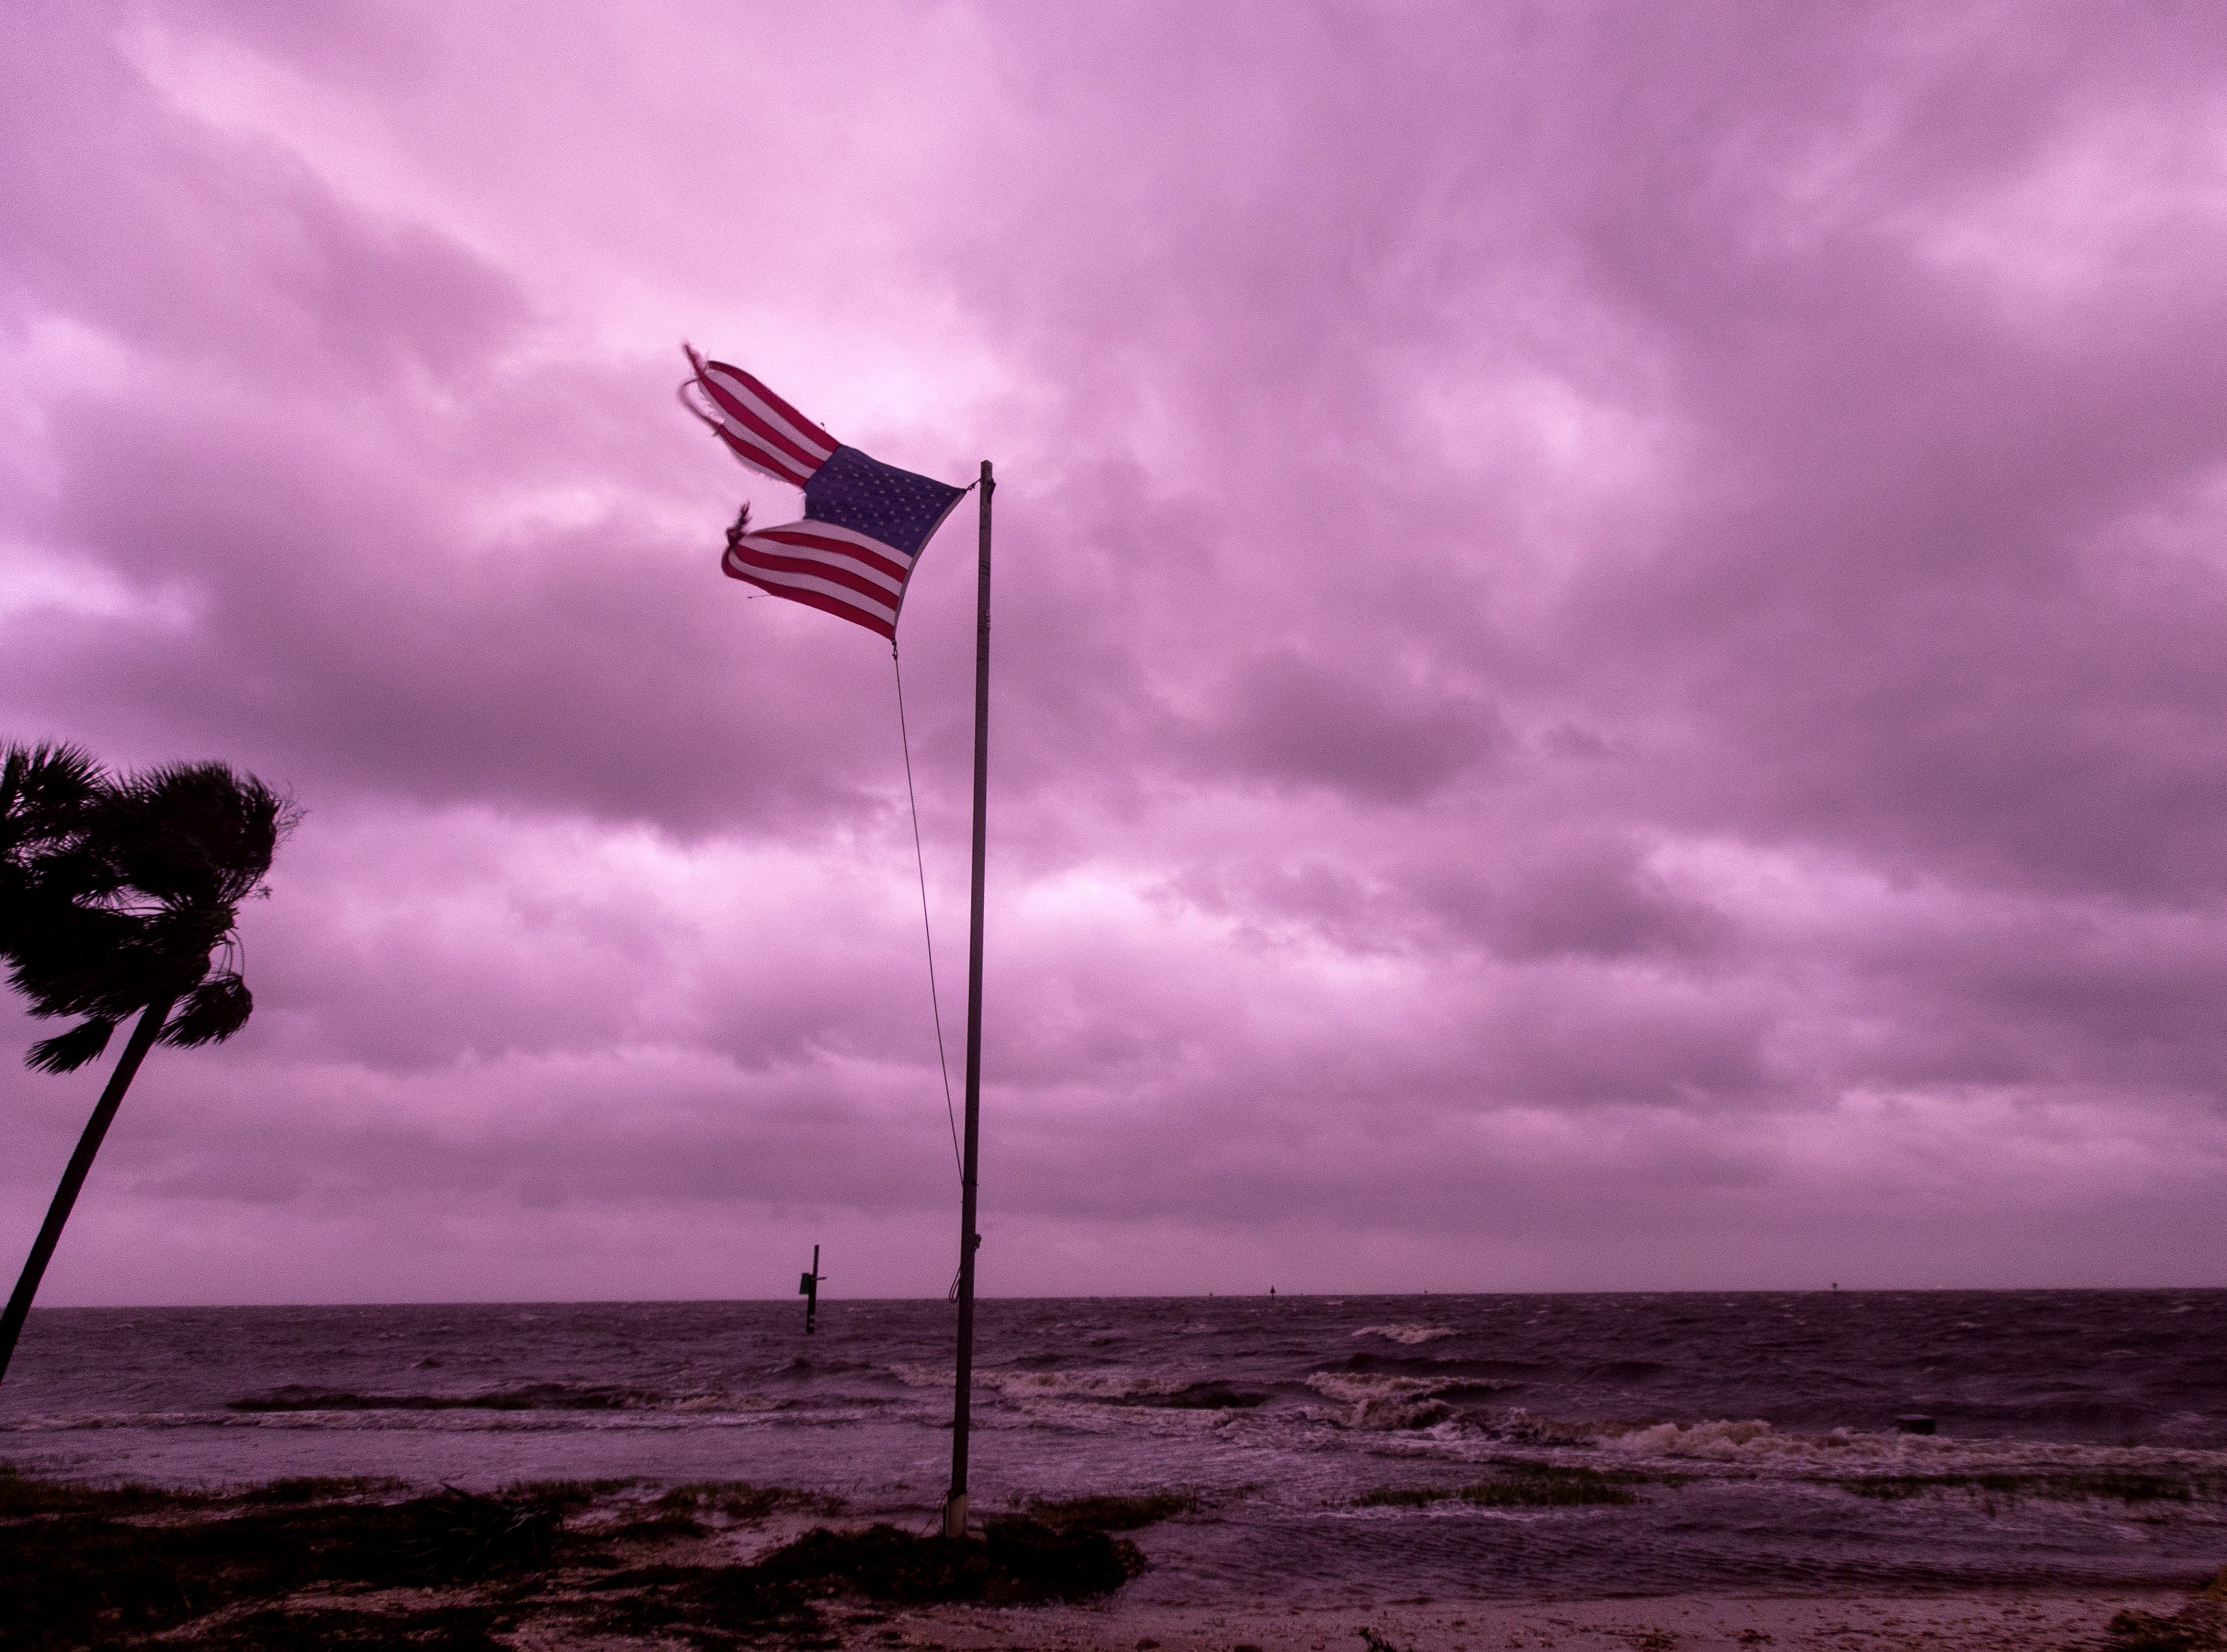 An American flag battered by Hurricane Michael continues to fly in the in the rose colored light of sunset at Shell Point Beach on Oct. 10, 2018 in Crawfordville, Fla.The hurricane hit the Florida Panhandle as a category 4 storm.